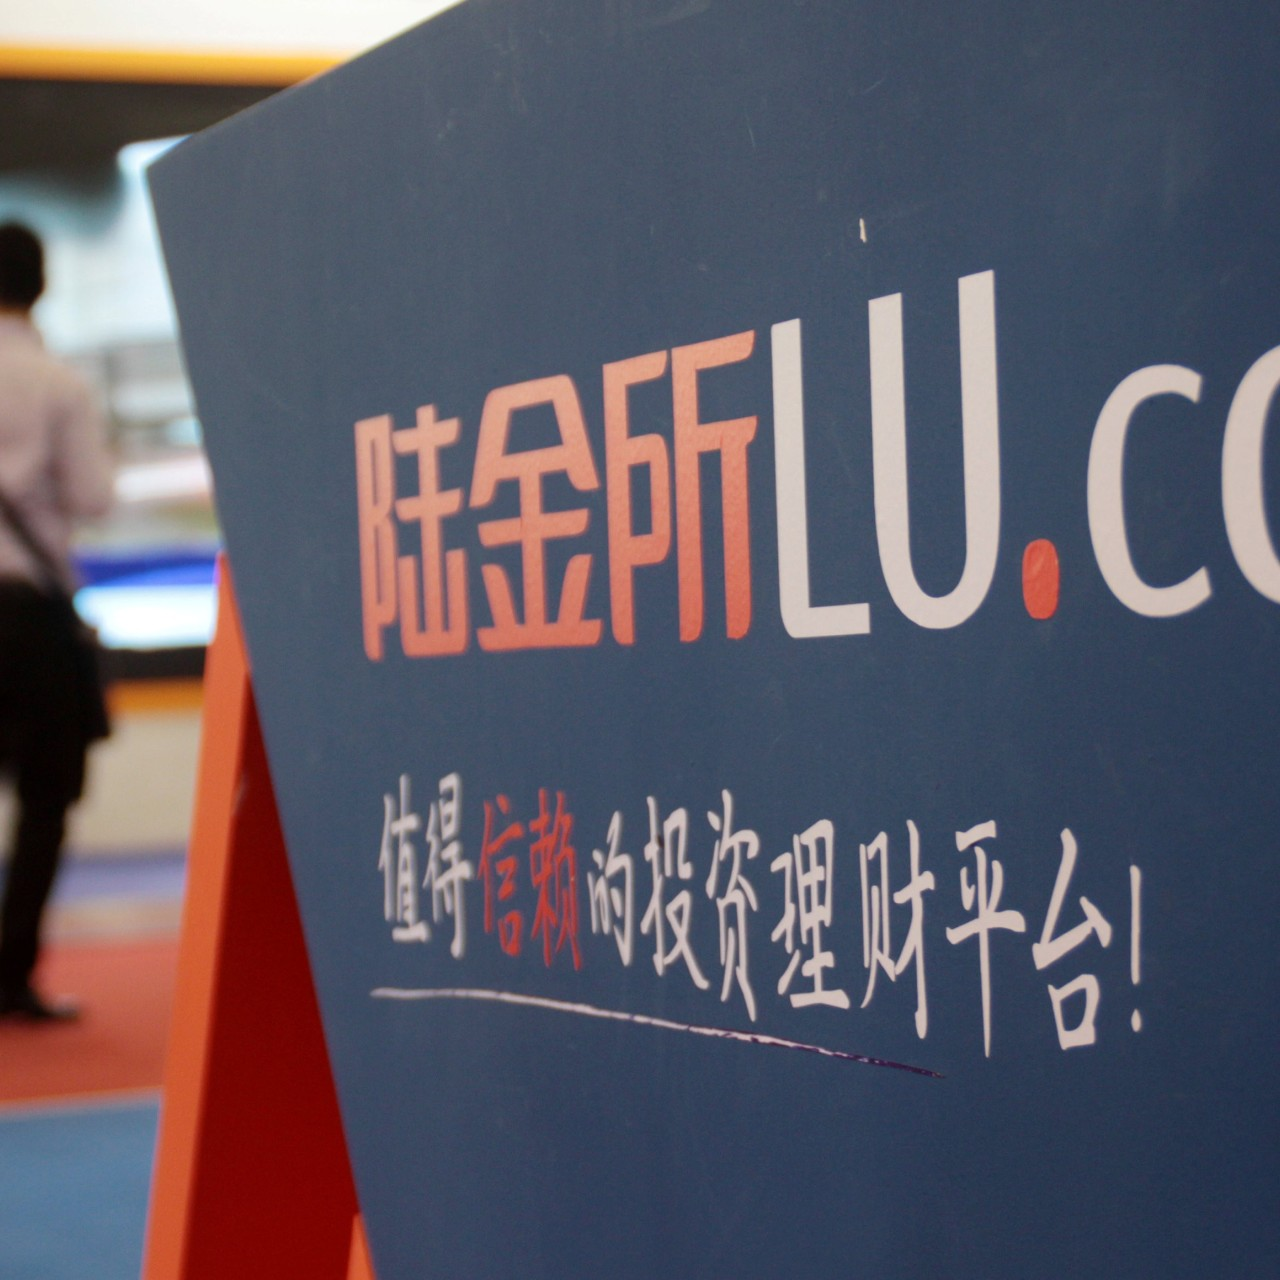 Investors left to rue losses as fraudulent Chinese P2P